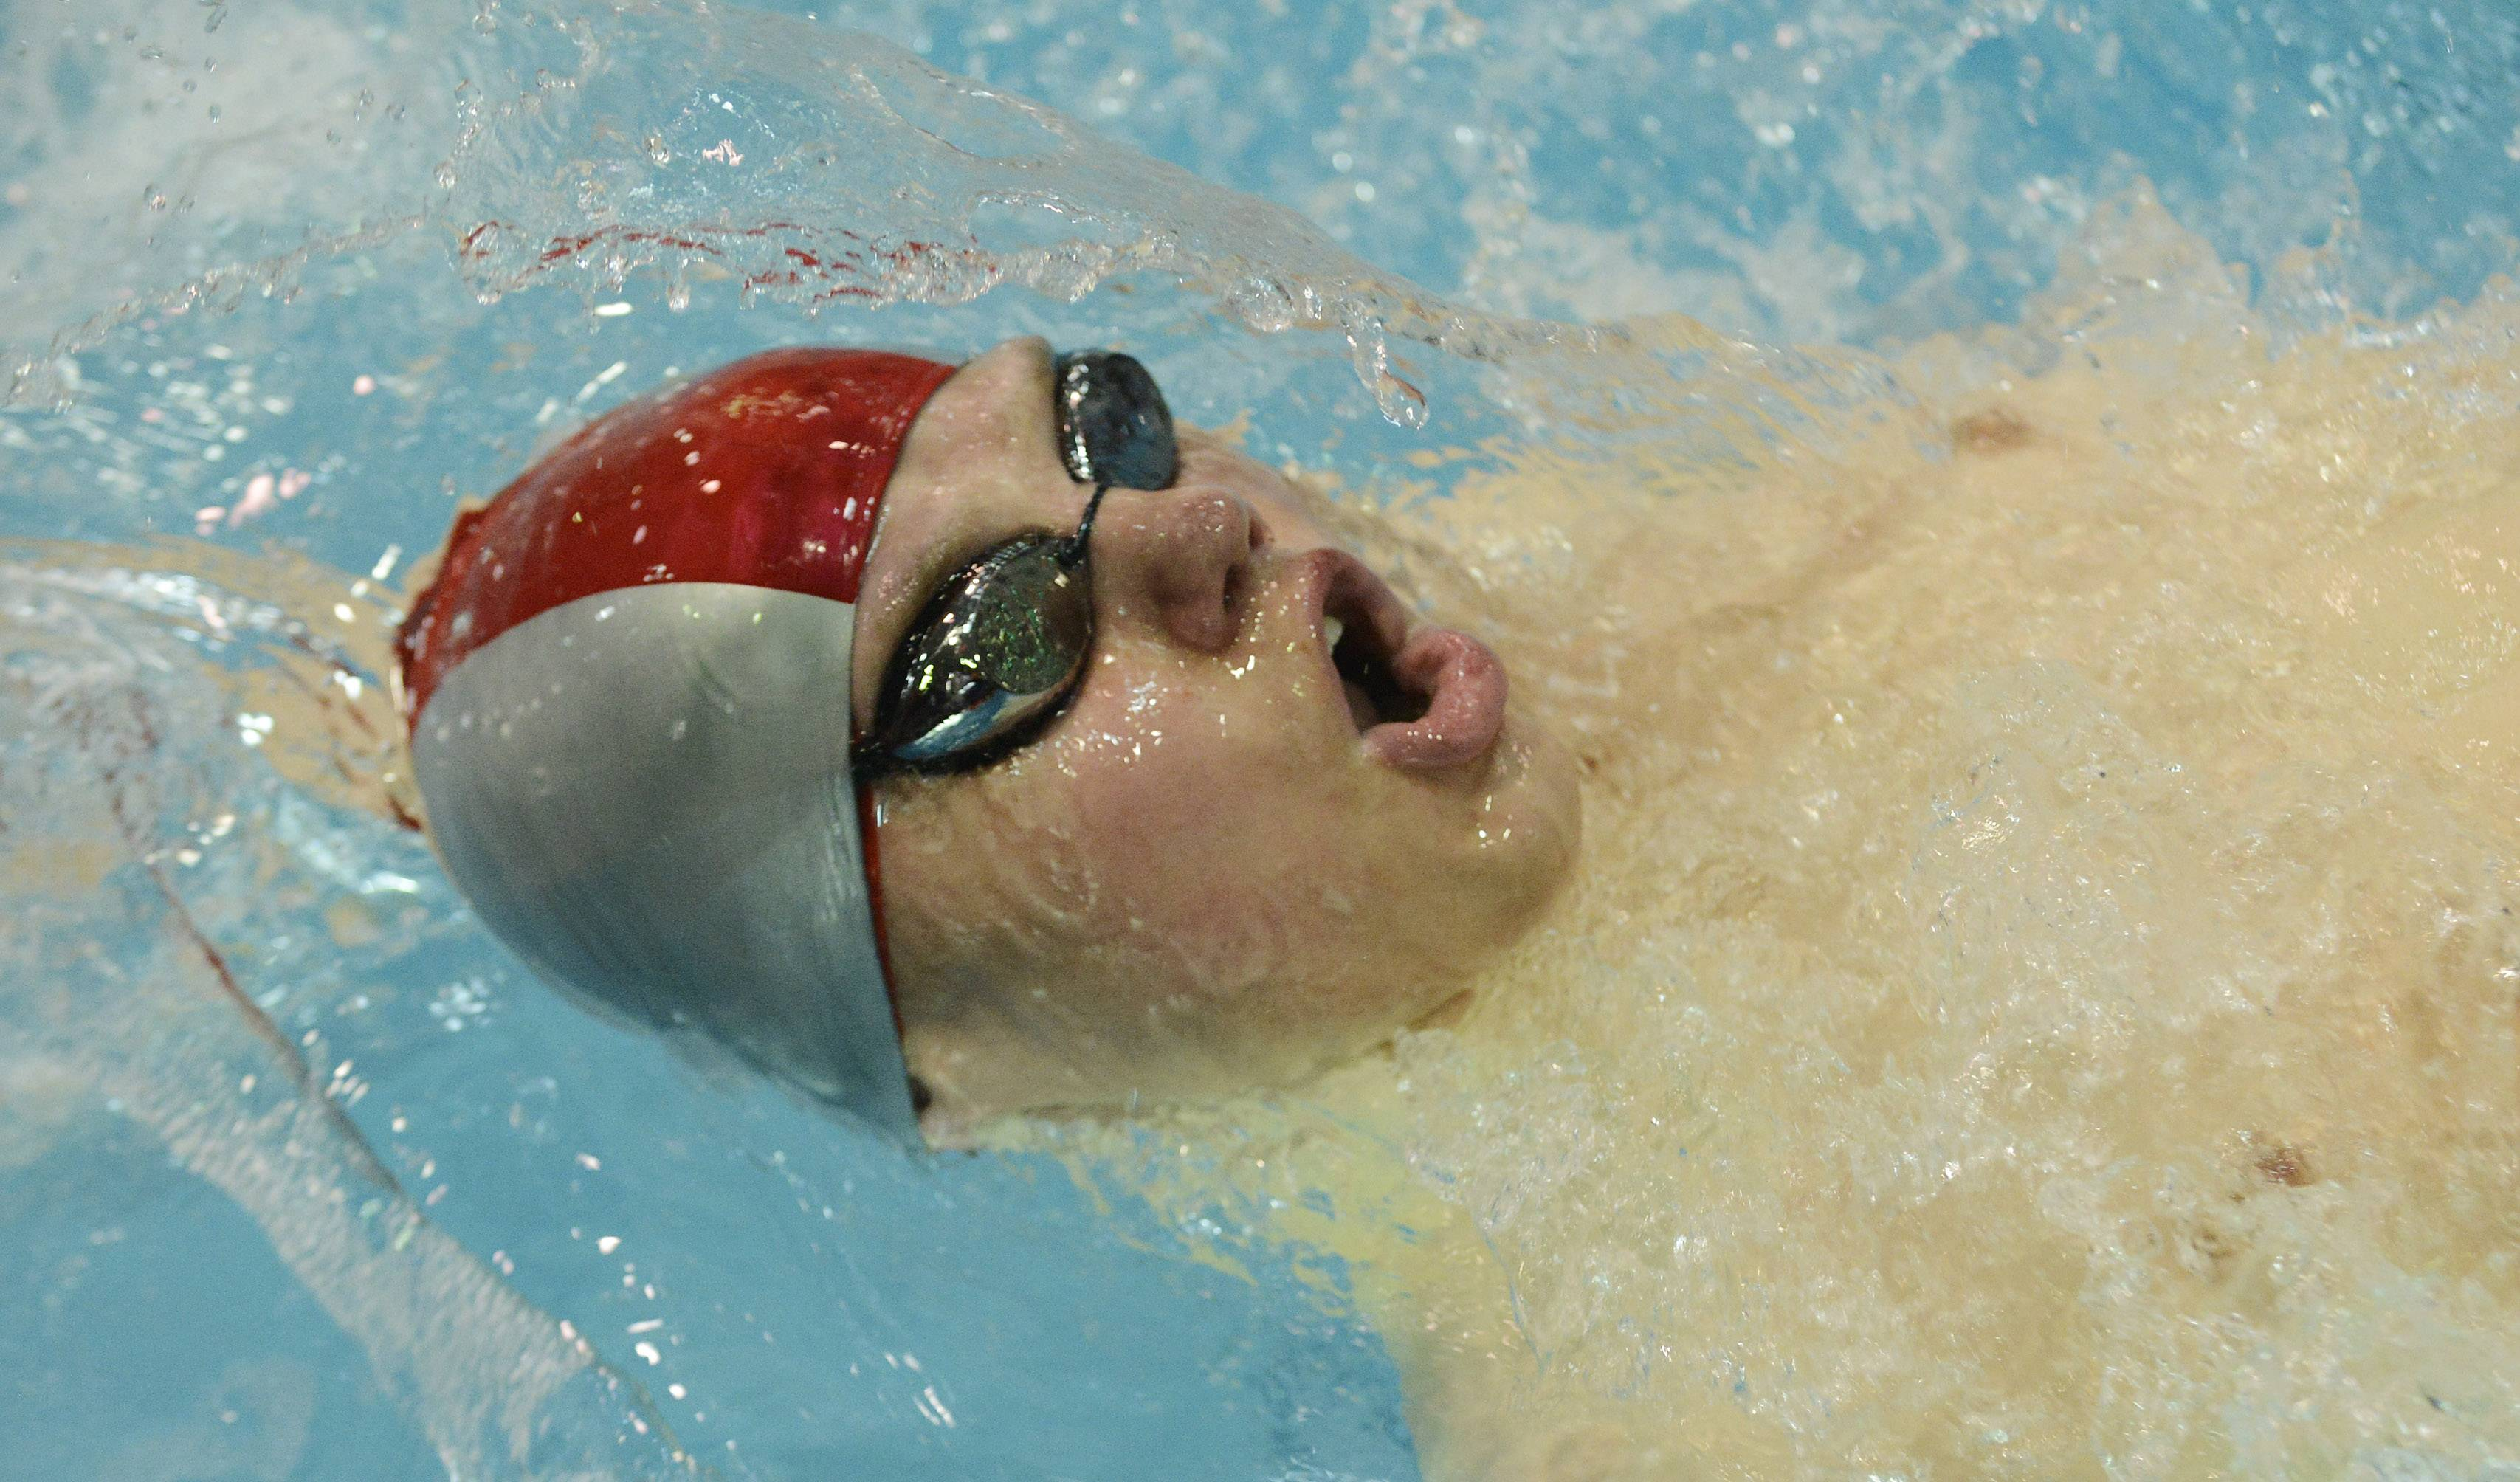 Mundelein's Ayrton Kasemets swims the backstroke portion of the 200-yard individual medley during the boys state swimming meet at Evanston High School Saturday.